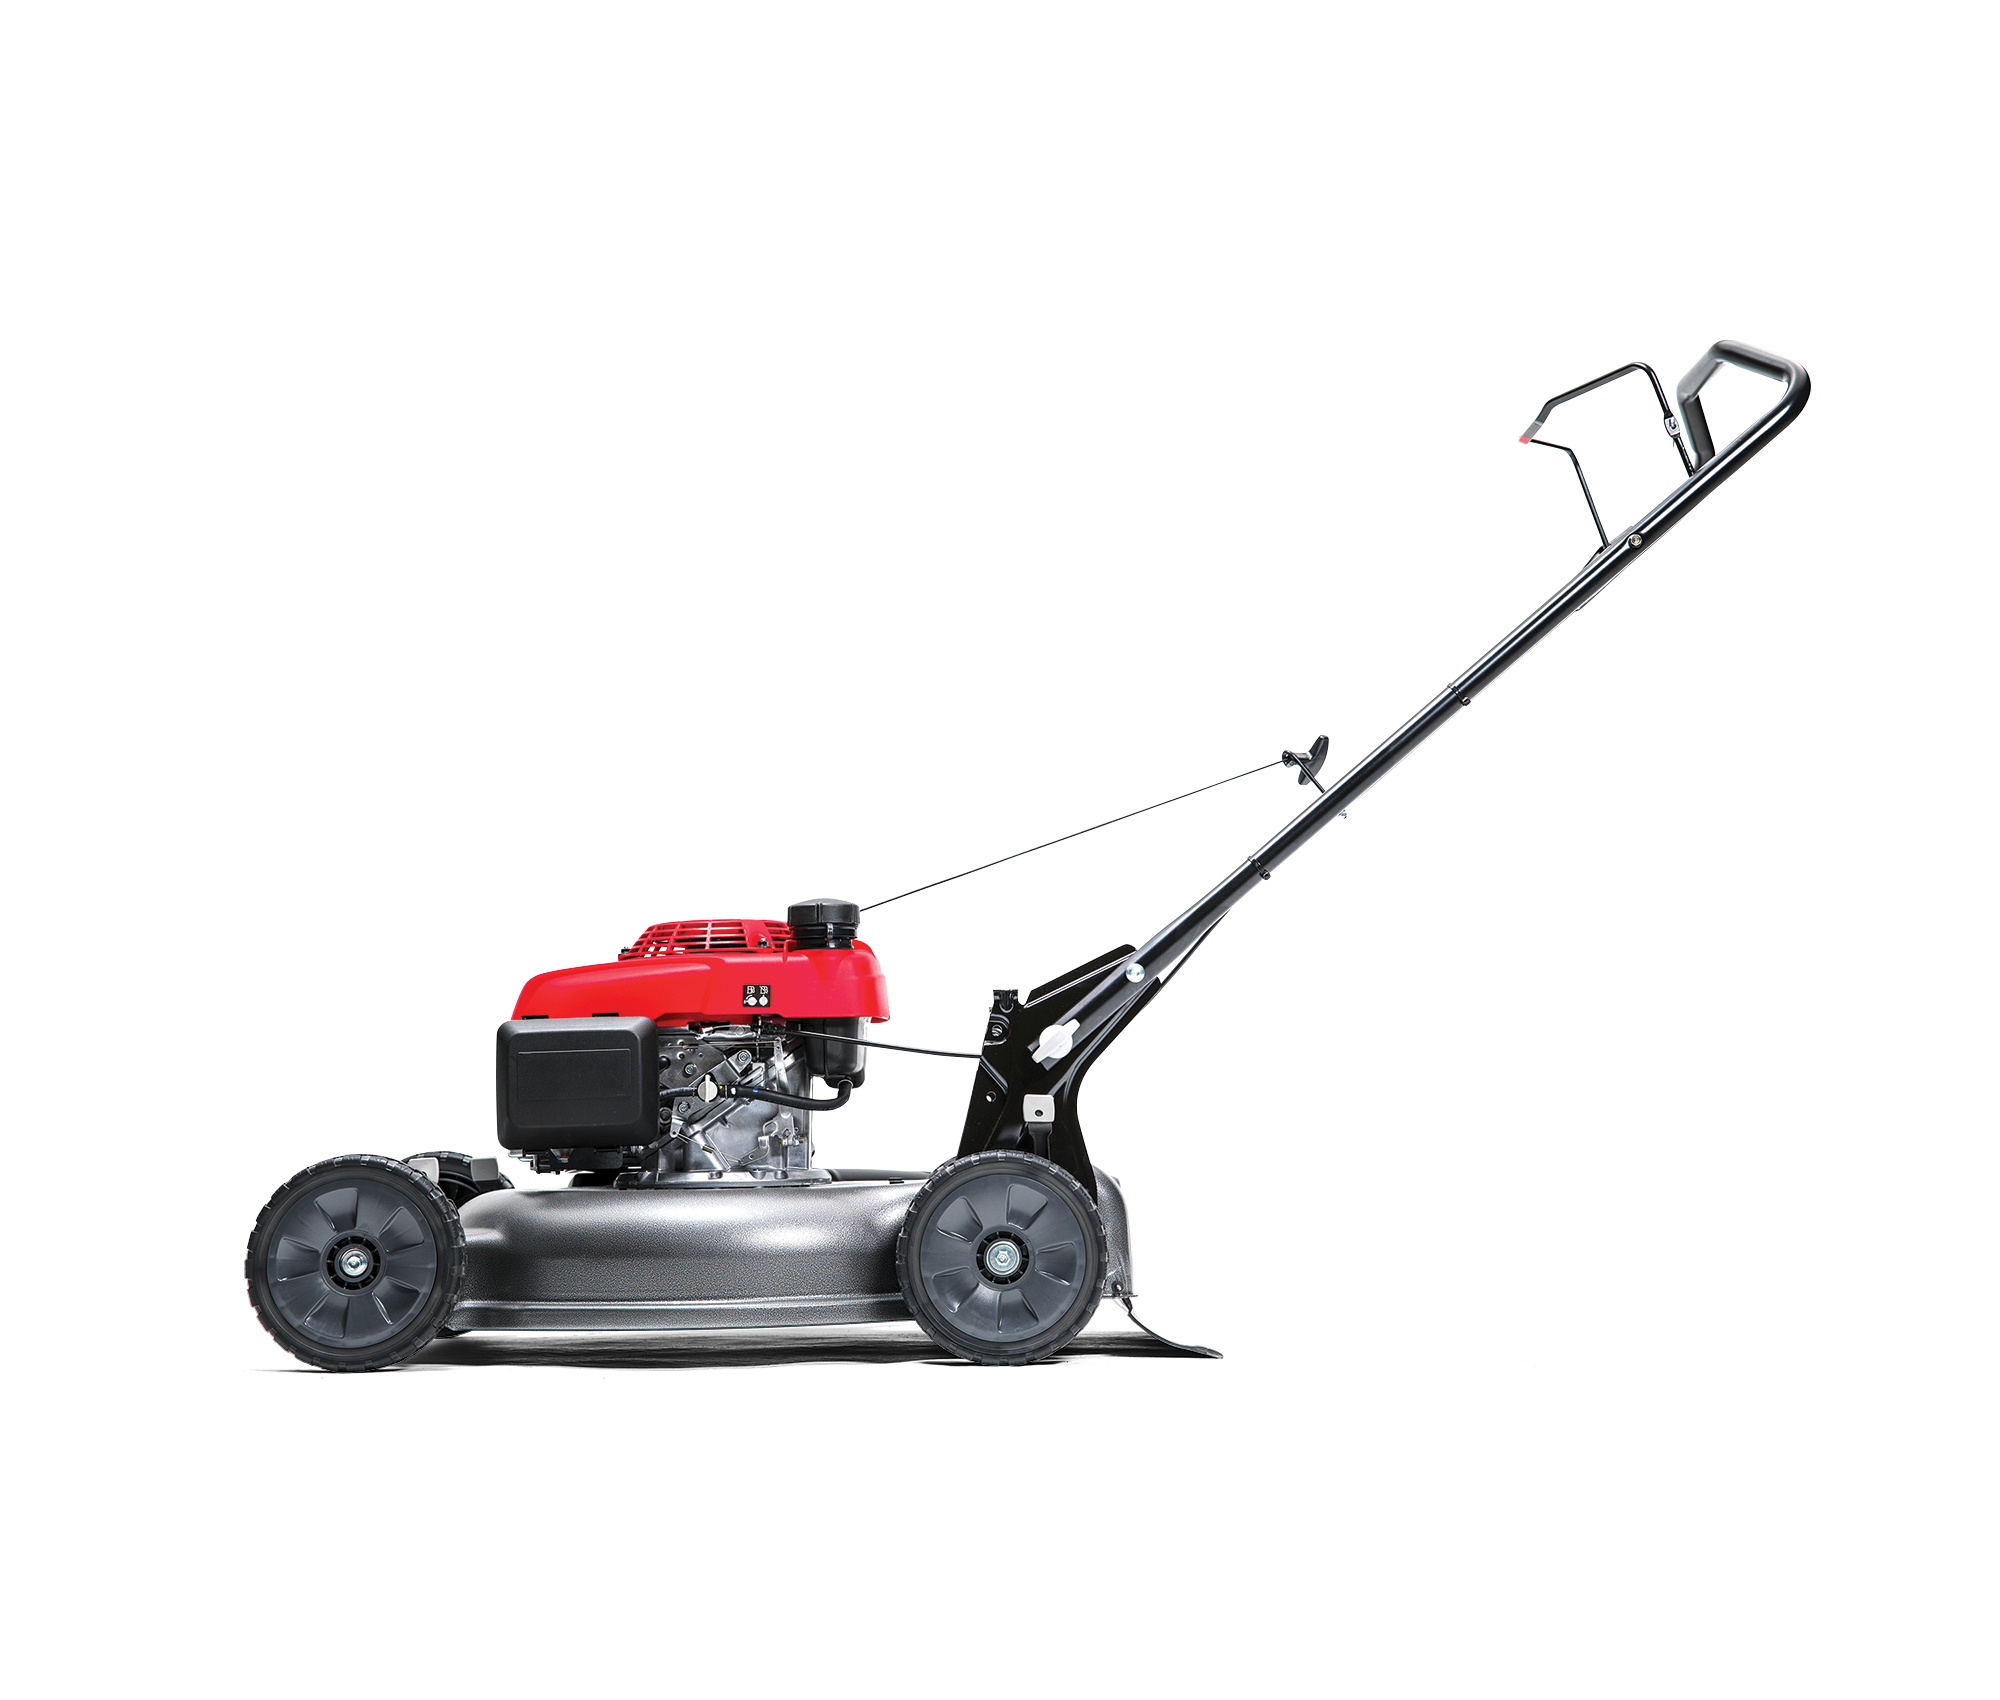 Image of the HRR MicroCut Rear-Bag Lawn Mower